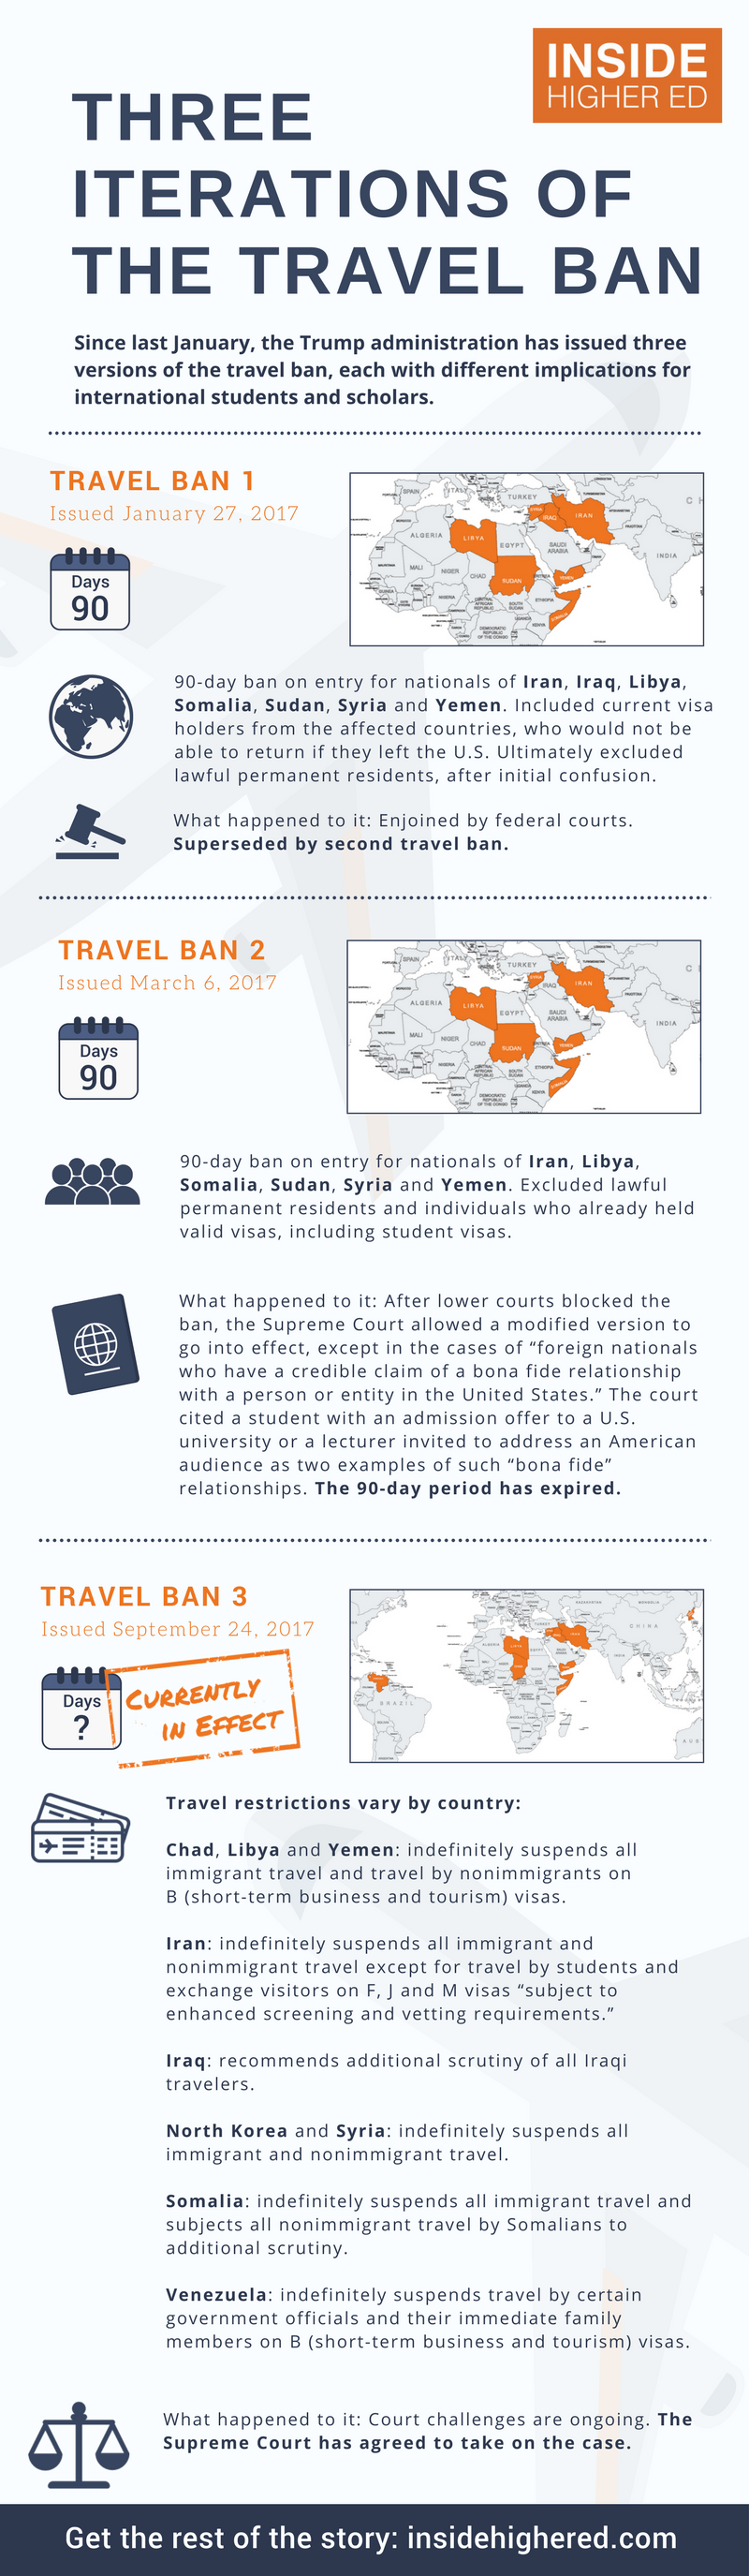 "Info graphic: Three Iterations of the Travel Ban. Since last January, the Trump administration has issued three versions of the travel ban, each with different implications for international students and scholars. Travel Ban 1: Issued January 27, 2017. Ninety-day ban on entry for nationals of Iran, Iraq, Libya, Somalia, Sudan, Syria and Yemen. Included current visa holders from the affected countries, who would not be able to return if they left the U.S. Ultimately excluded lawful permanent residents, after initial confusion. What happened to it: Enjoined by federal courts. Superseded by second travel ban. Travel Ban 2: Issued March 6, 2017. Ninety-day ban on entry for nationals of Iran, Libya, Somalia, Sudan, Syria and Yemen. Excluded lawful permanent residents and individuals who already held valid visas, including student visas. What happened to it: After lower courts blocked the ban, the Supreme Court allowed  a modified version to go into effect, except in the cases of ""foreign nationals who have a credible claim of a bona fide relationship with a person or entity in the United States."" The court cited a student with an admission offer to a U.S. university or a lecturer invited to address an American audience as two examples of such ""bona fide"" relationships. The ninety-day period has expired. Travel Ban 3: Issued September 24, 2017. Travel restrictions vary by country. Chad, Libya and Yemen: Indefinitely suspends all immigrant travel and travel by nonimmigrants on B (short-term business and tourism) visas. Iran: Indefinitely suspends all immigrant and nonimmigrant travel except for travel by students and exchange visitors on F, J and M visas ""subject to enhanced screening and vetting requirements."" Iraq: recommends additional scrutiny of all Iraqi travelers. North Korea and Syria: indefinitely suspends all immigrant and nonimmigrant travel. Somalia: indefinitely suspends all immigrant travel and subjects all nonimmigrant travel by Somalians to additional scrutiny. Venezuela: indefinitely suspends travel by certain government officials and their immediate family members on B (short-term business and tourism) visas. What happened to it: Court challenges are ongoing. The Supreme Court has agreed to take on the case. Get the rest of the story: insidehighered.com"